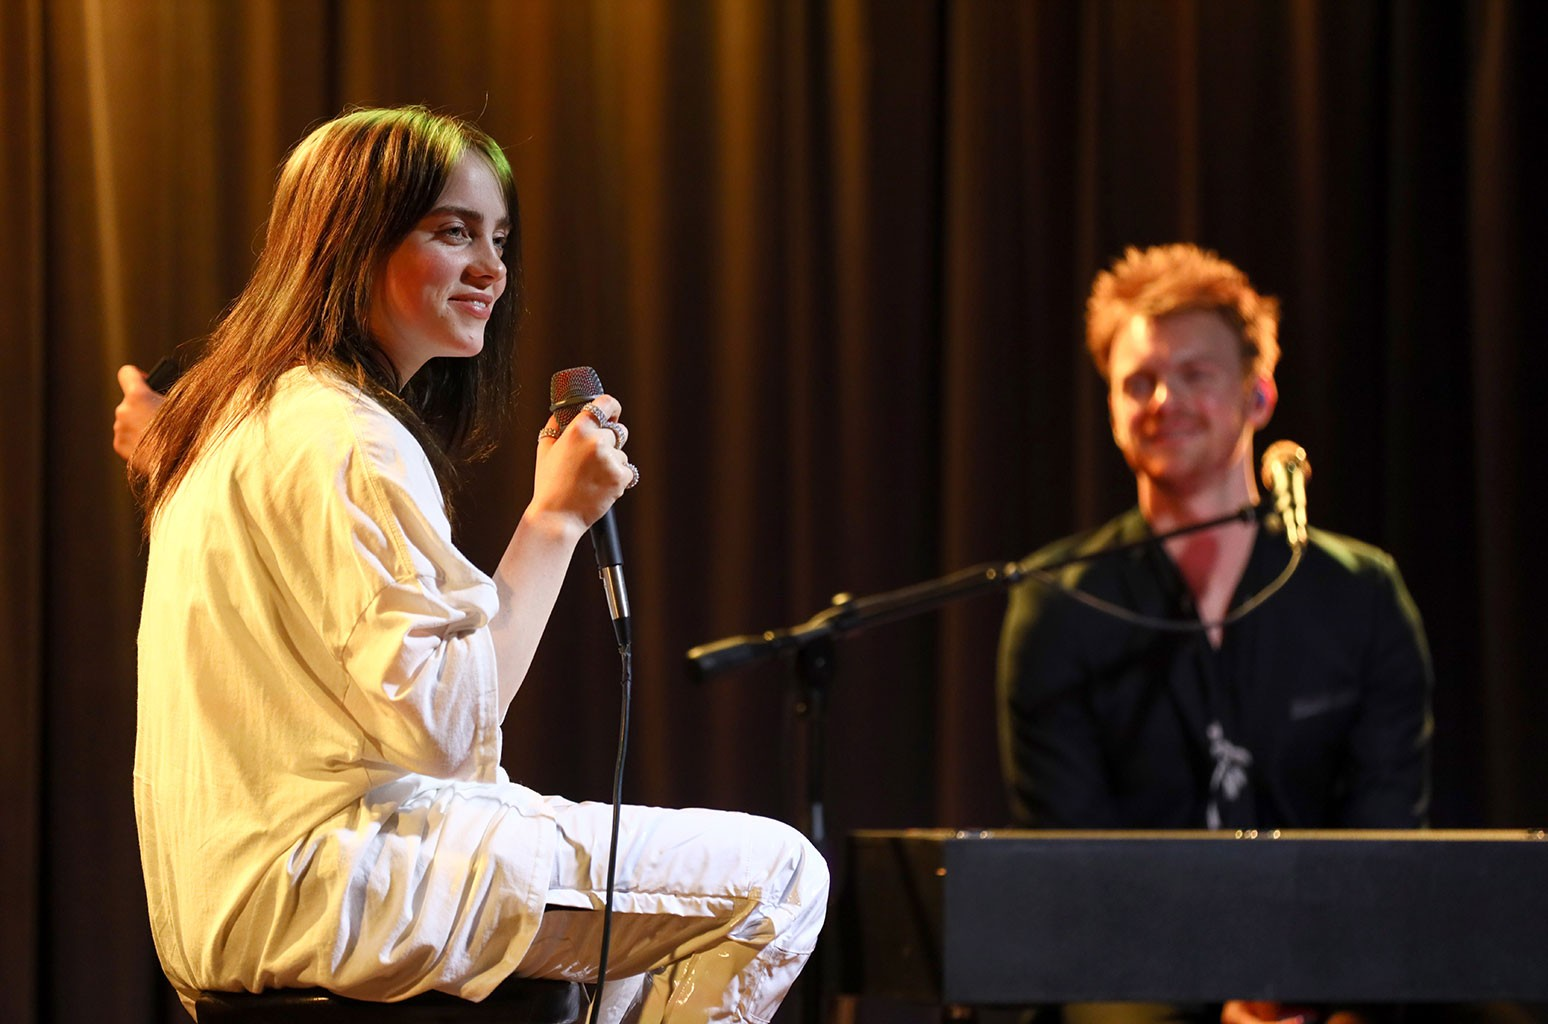 Billie Eilish and FINNEAS